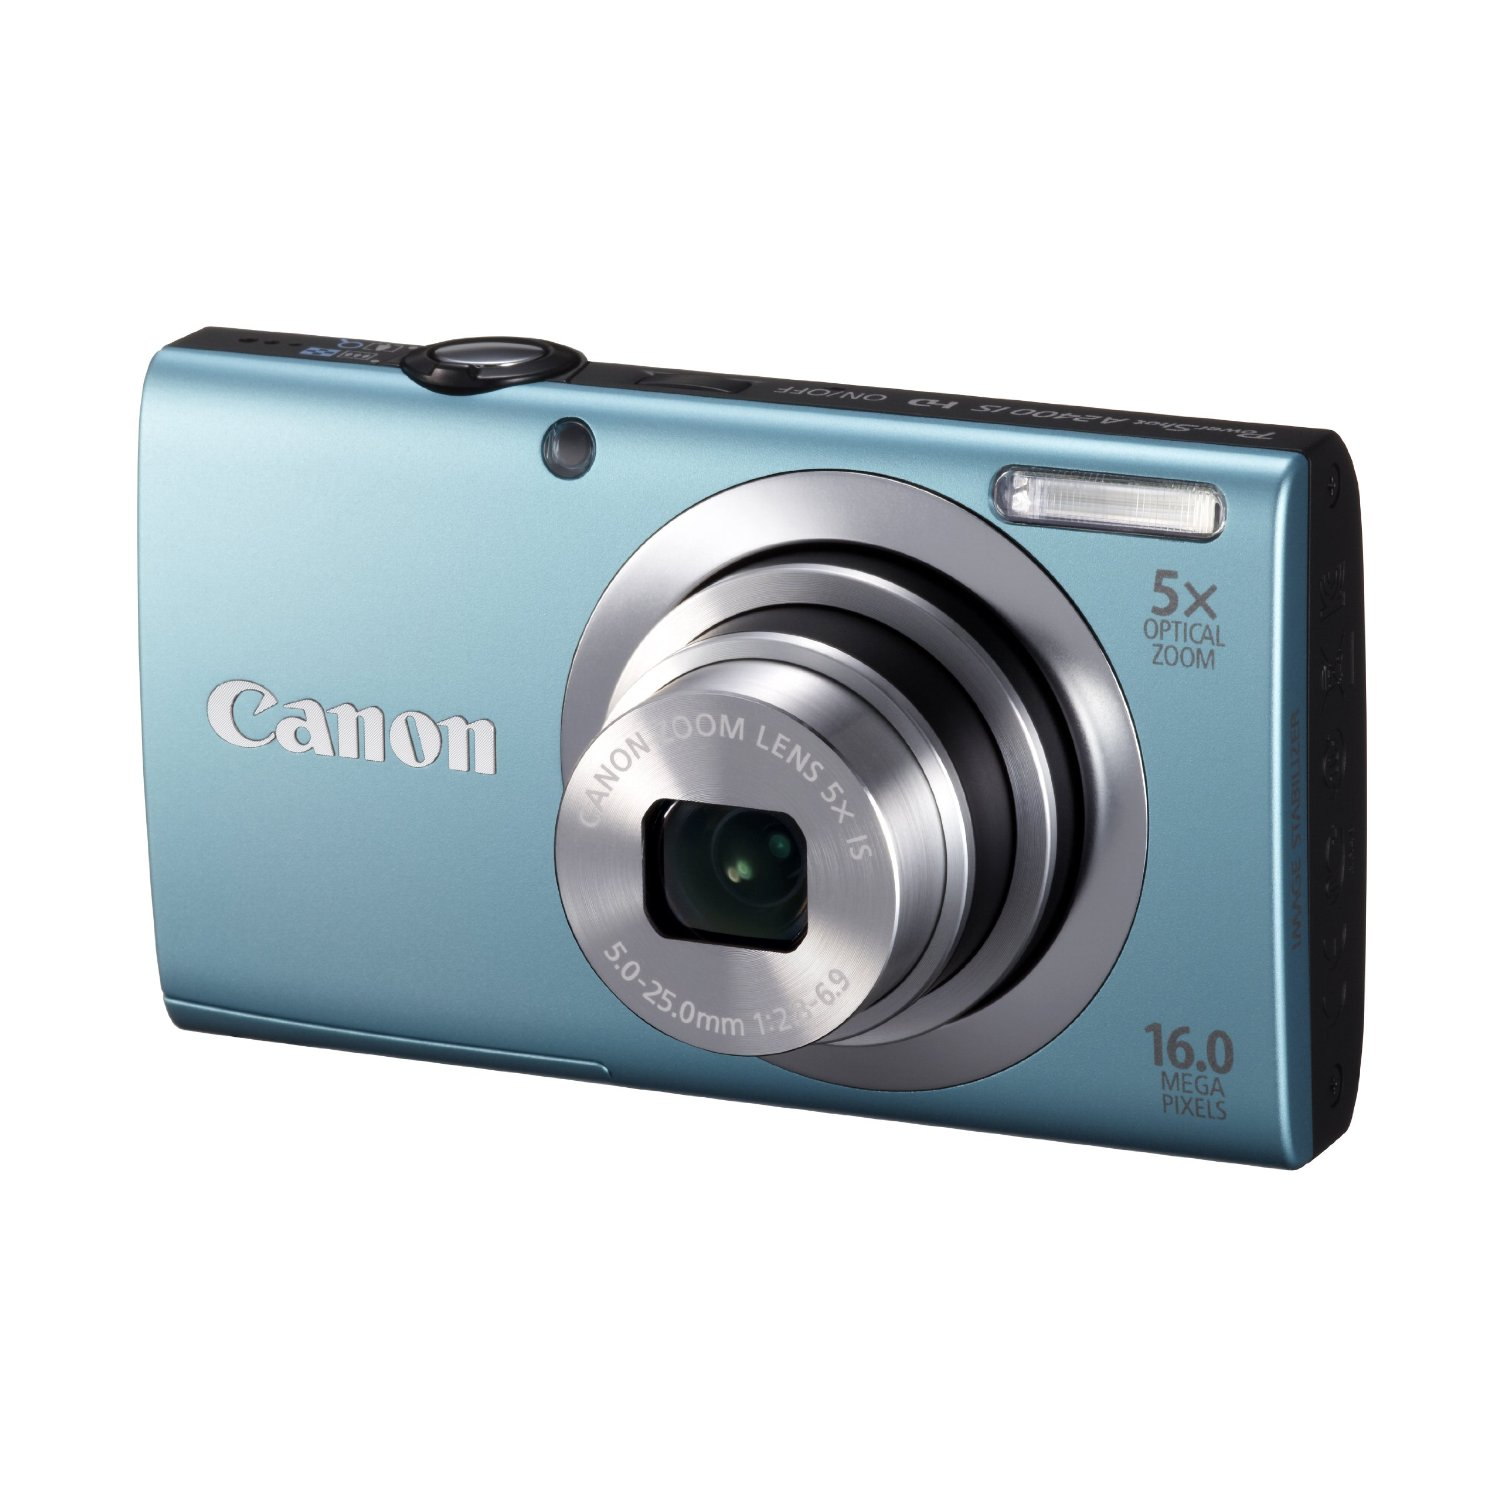 [Review] Canon PowerShot A2400 IS